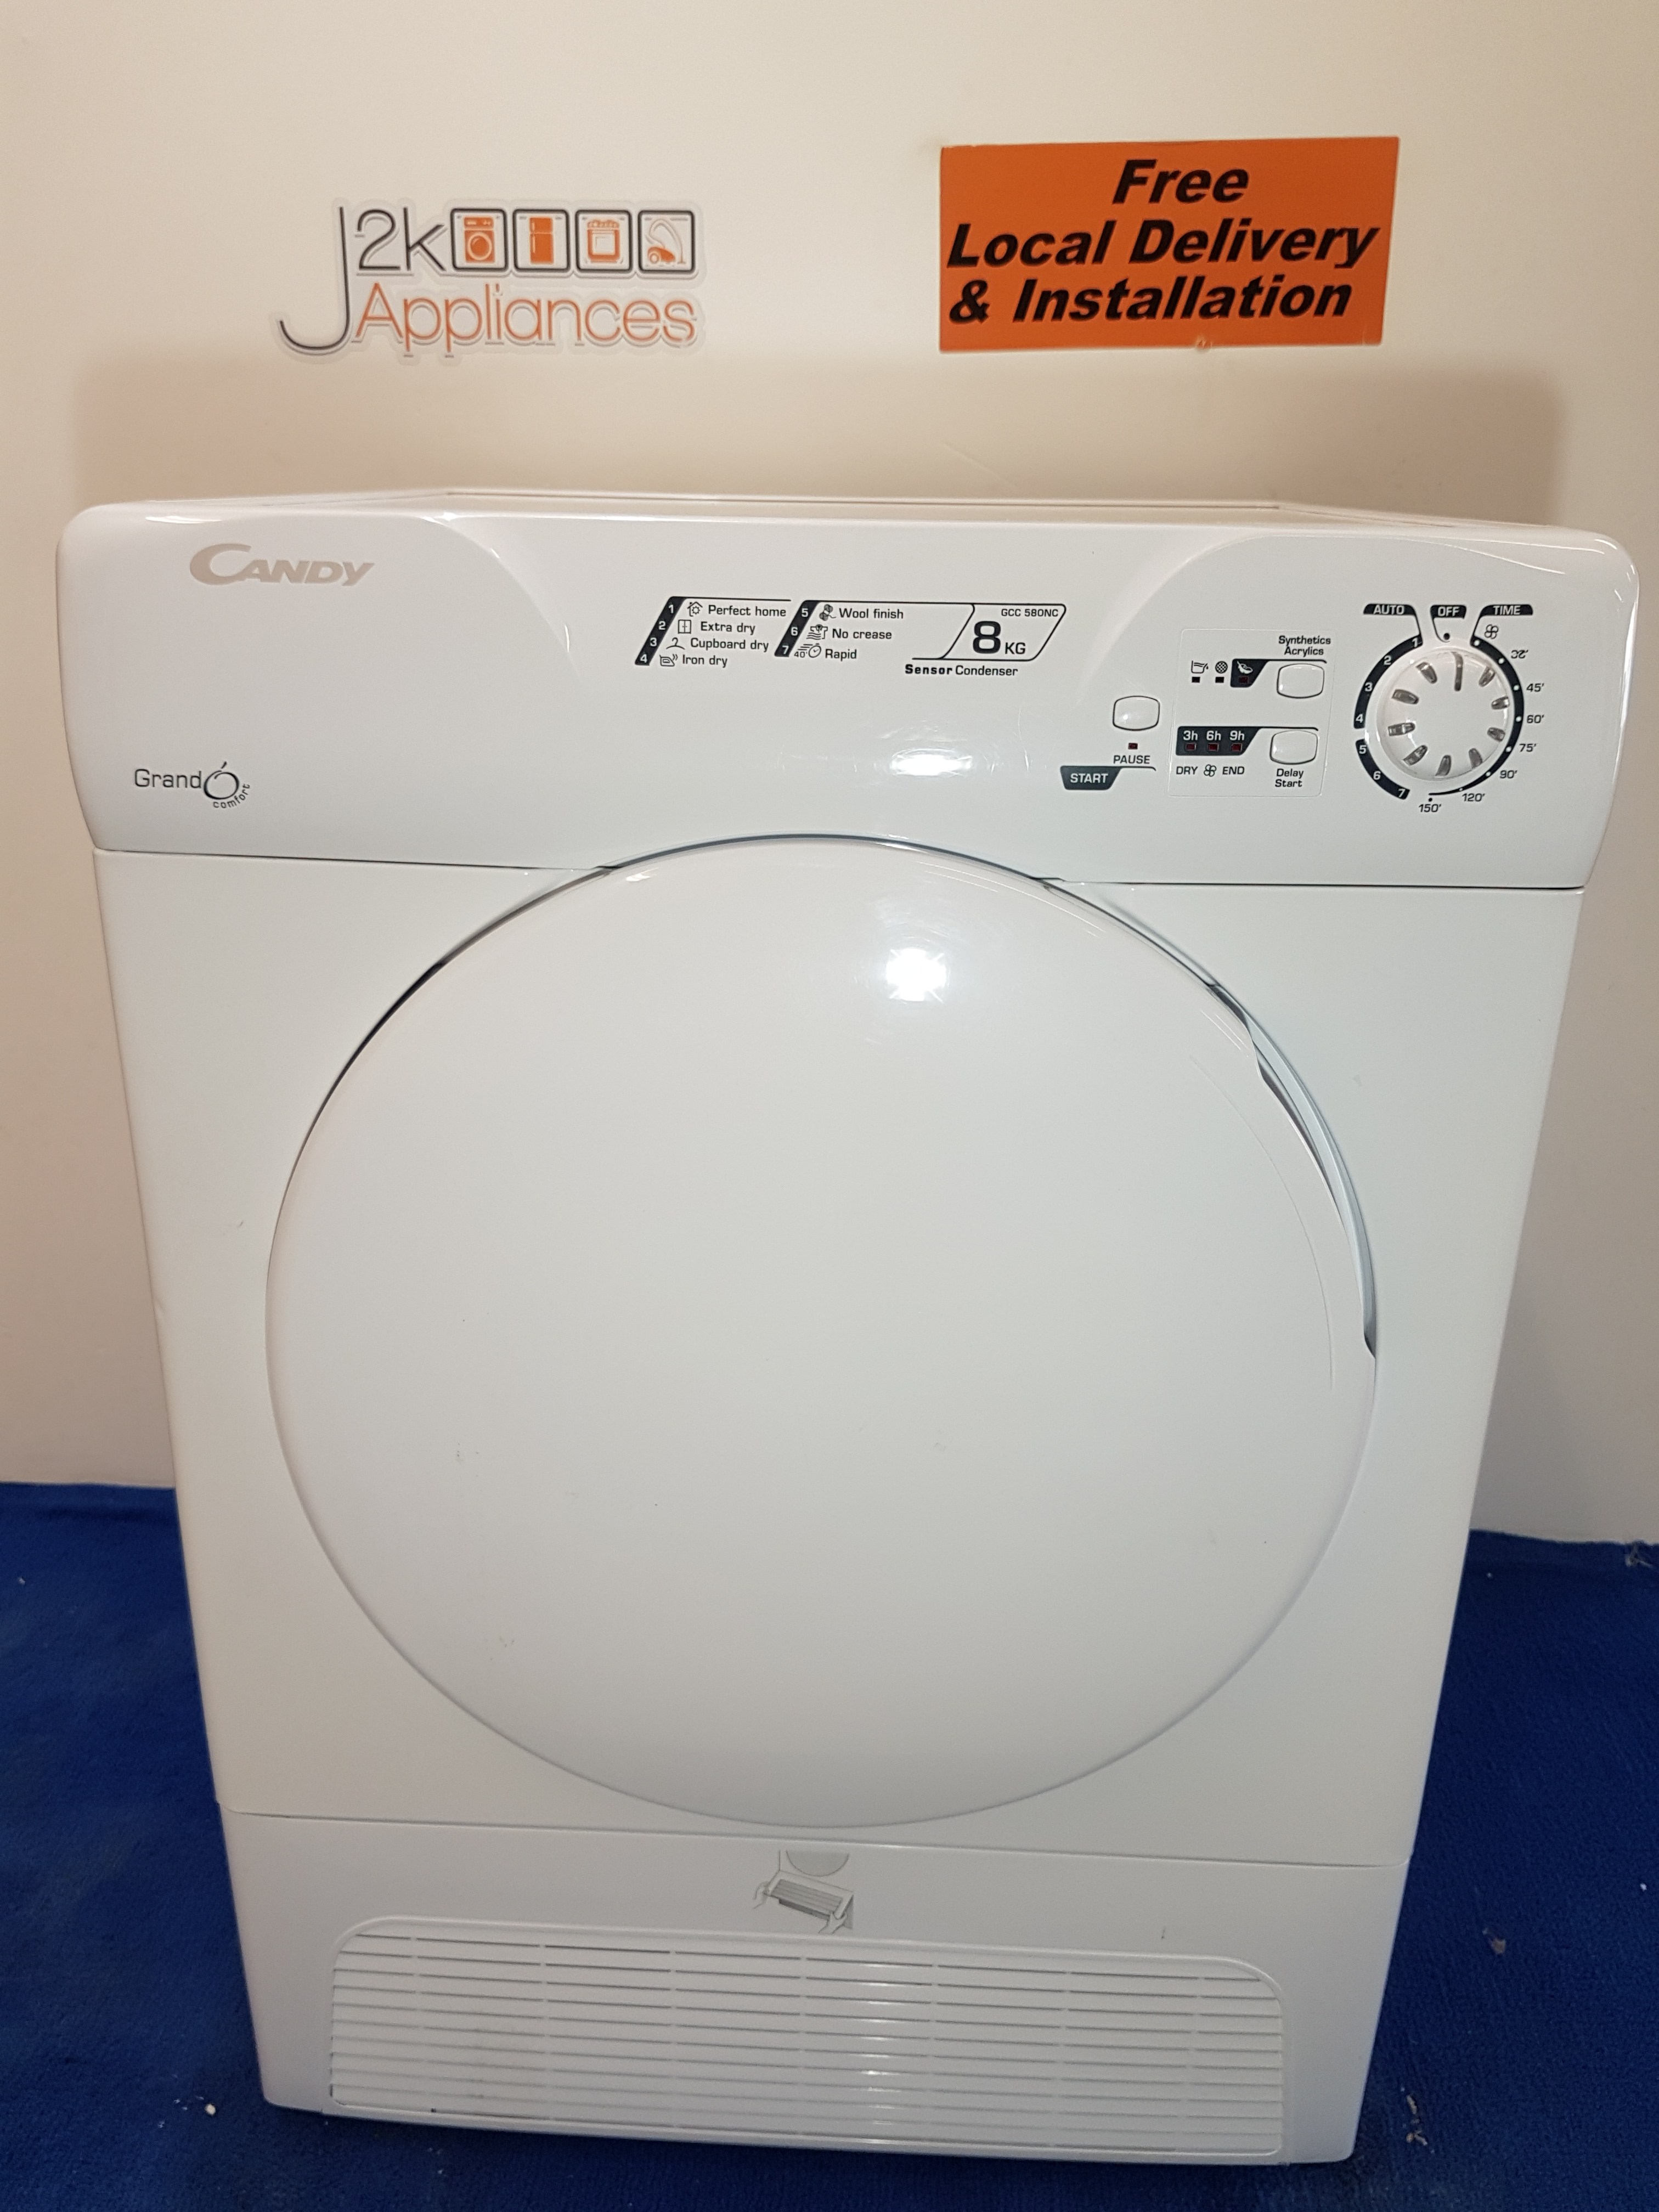 Dy125 Candy Grand O 8kg Condenser Dryer J2k Appliances